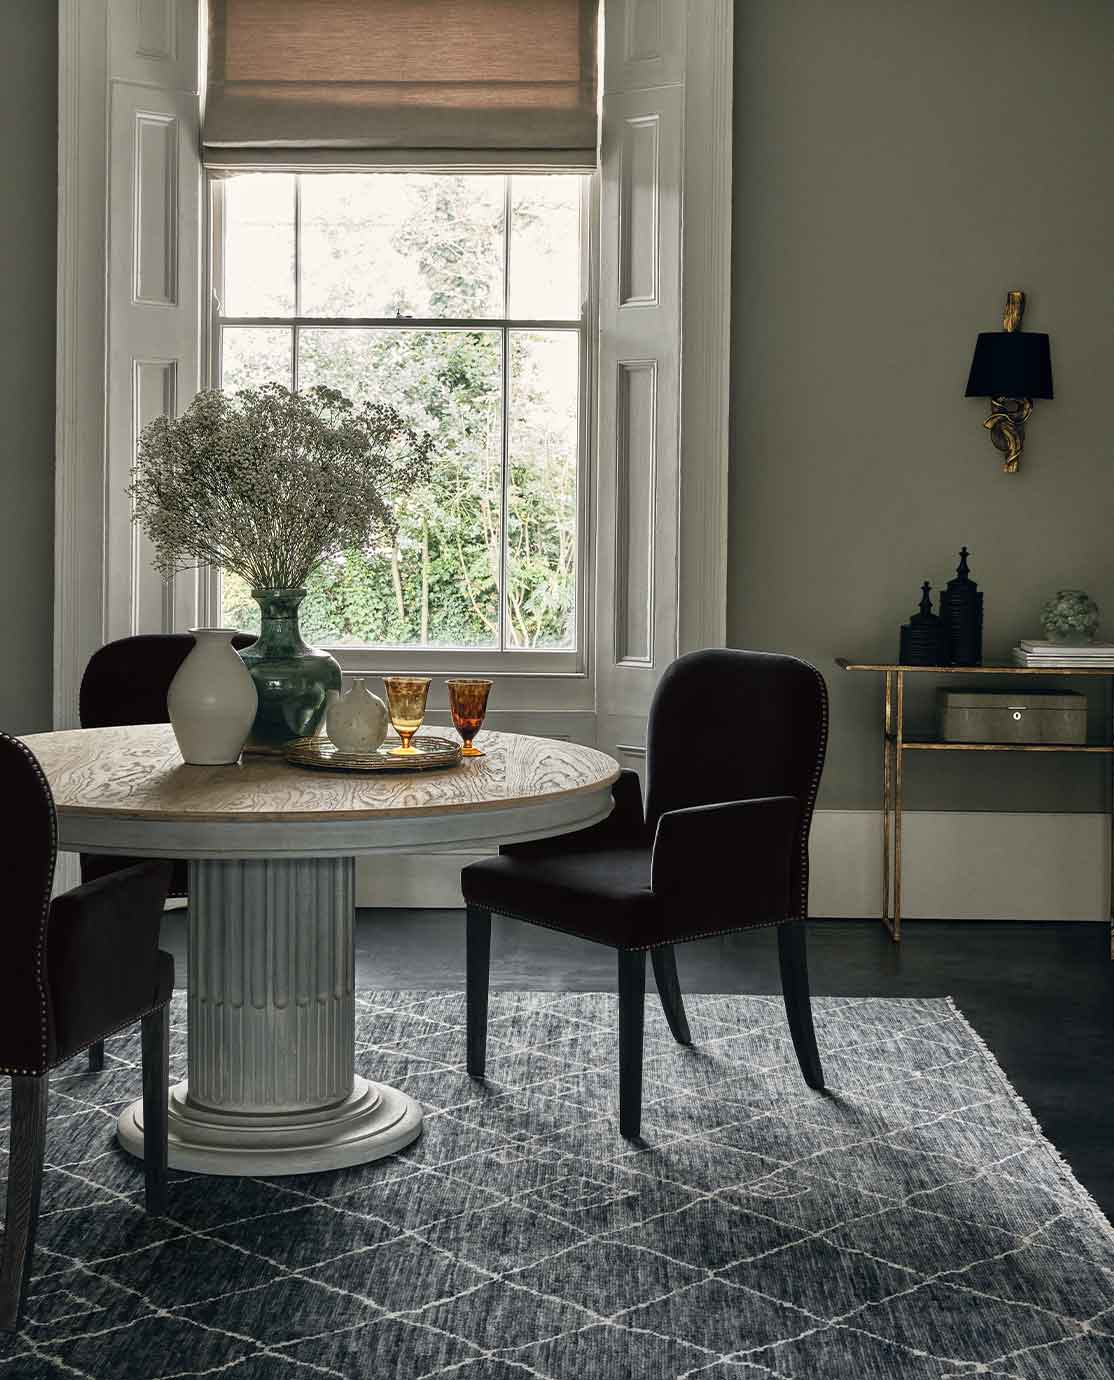 A rattan armchair in front of a black desk, decorated with a monochrome abstract print